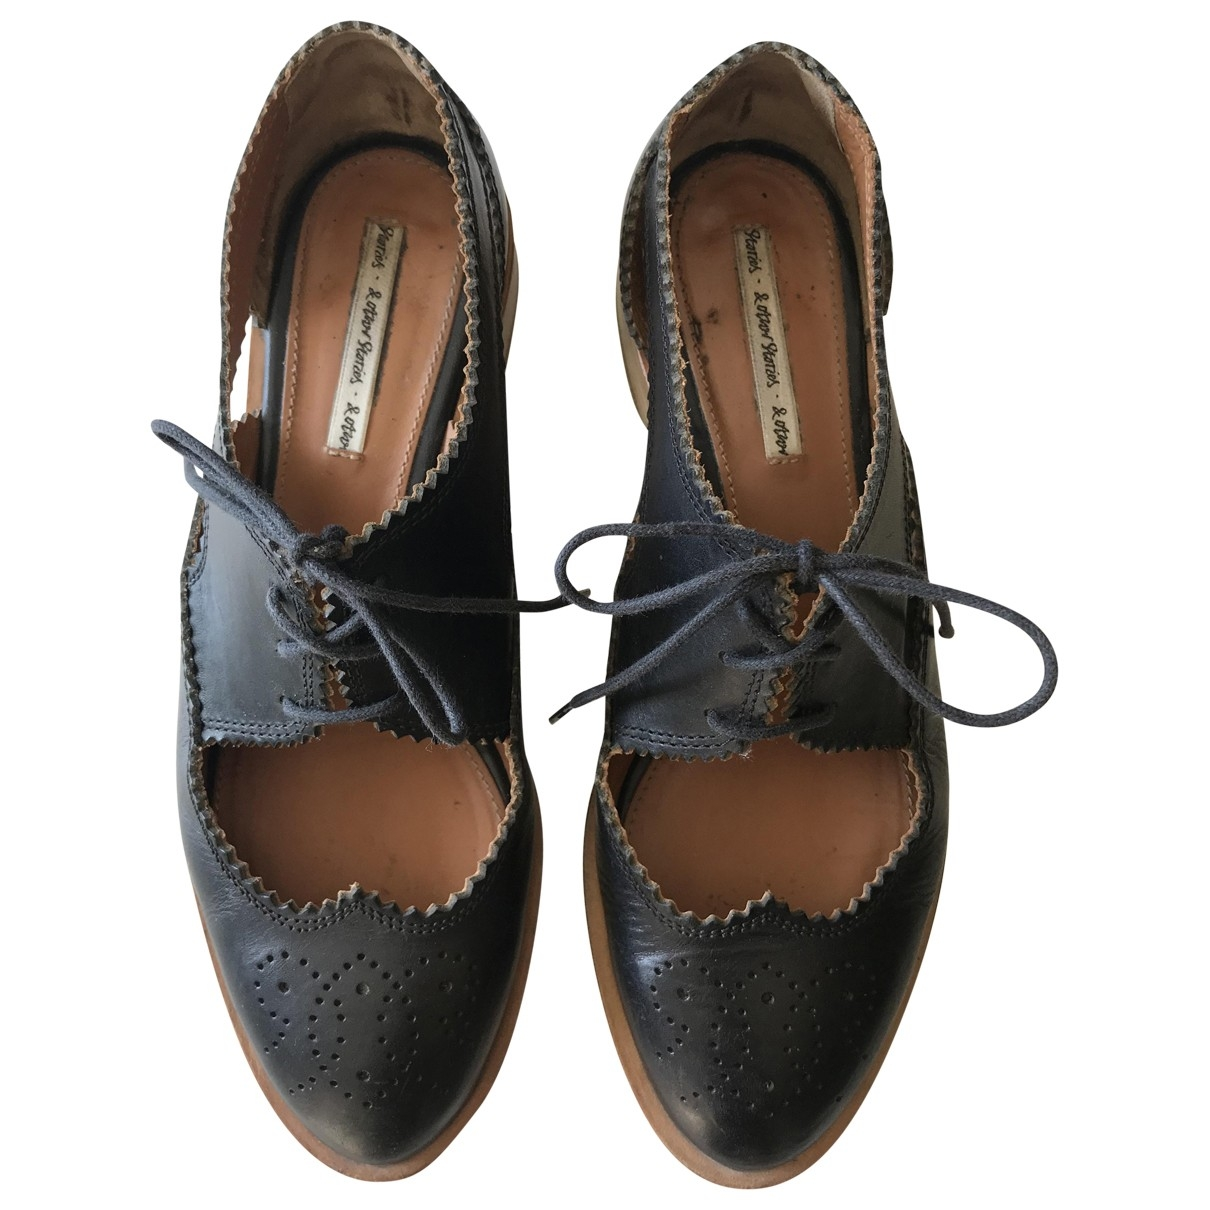 & Stories \N Black Leather Flats for Women 38 EU